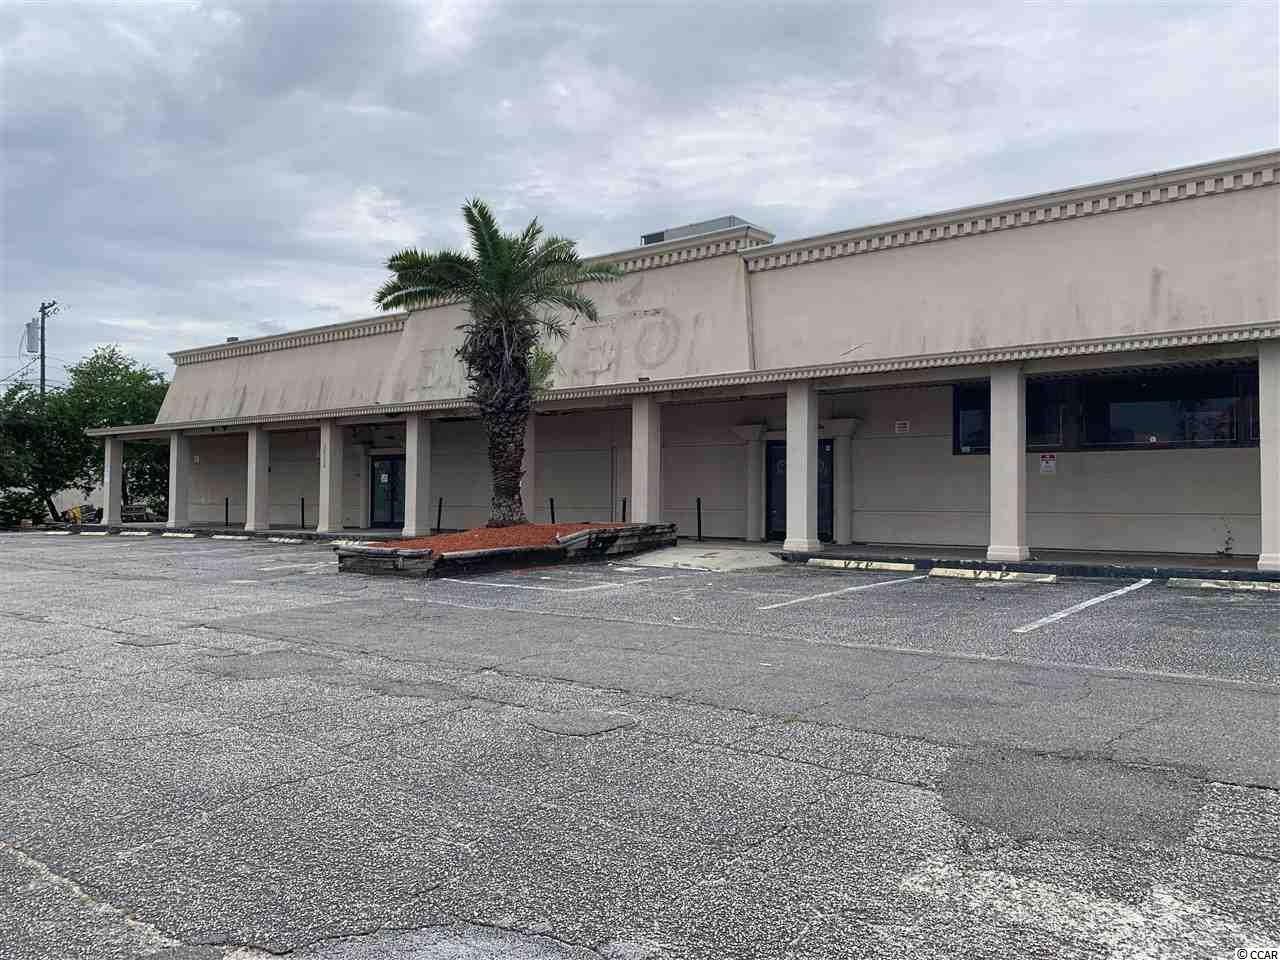 185 ft of Highway Frontage with a traffic court for 2017 approx. 26,000. Property is for lease or sale. Building has Approx. 15,872 Sq. ft. inside the building. 95 parking spaces. Less than 1/4 mile to the ocean. Easy access. The building was being used as a warehouse.